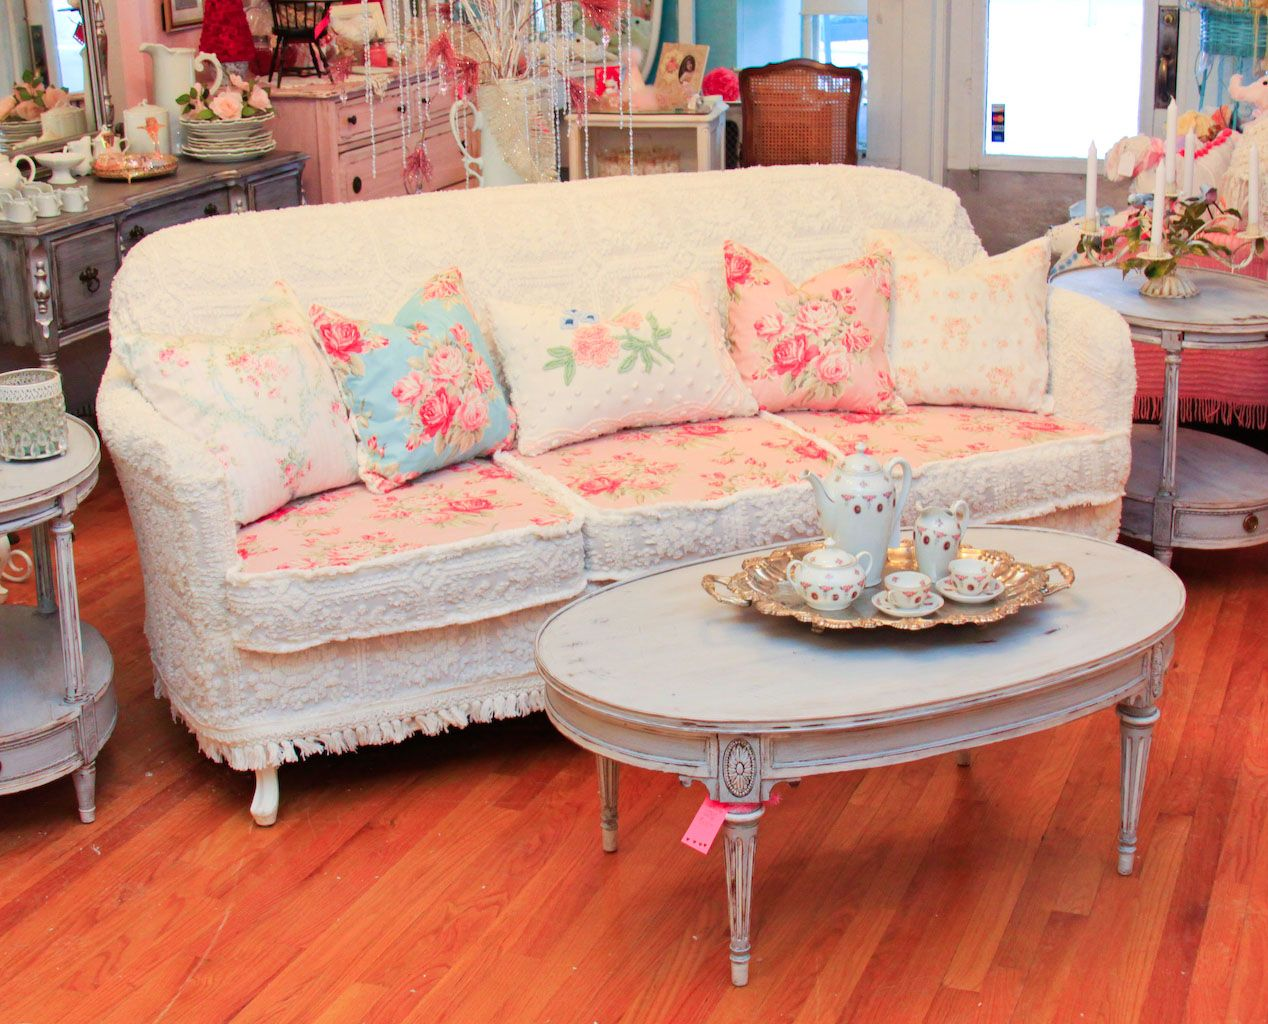 Merveilleux Vintage Chic Furniture Schenectady NY: OMG! Antique Sofa Chenille Bedspread  Slipcover Shabby Chic Wonderful